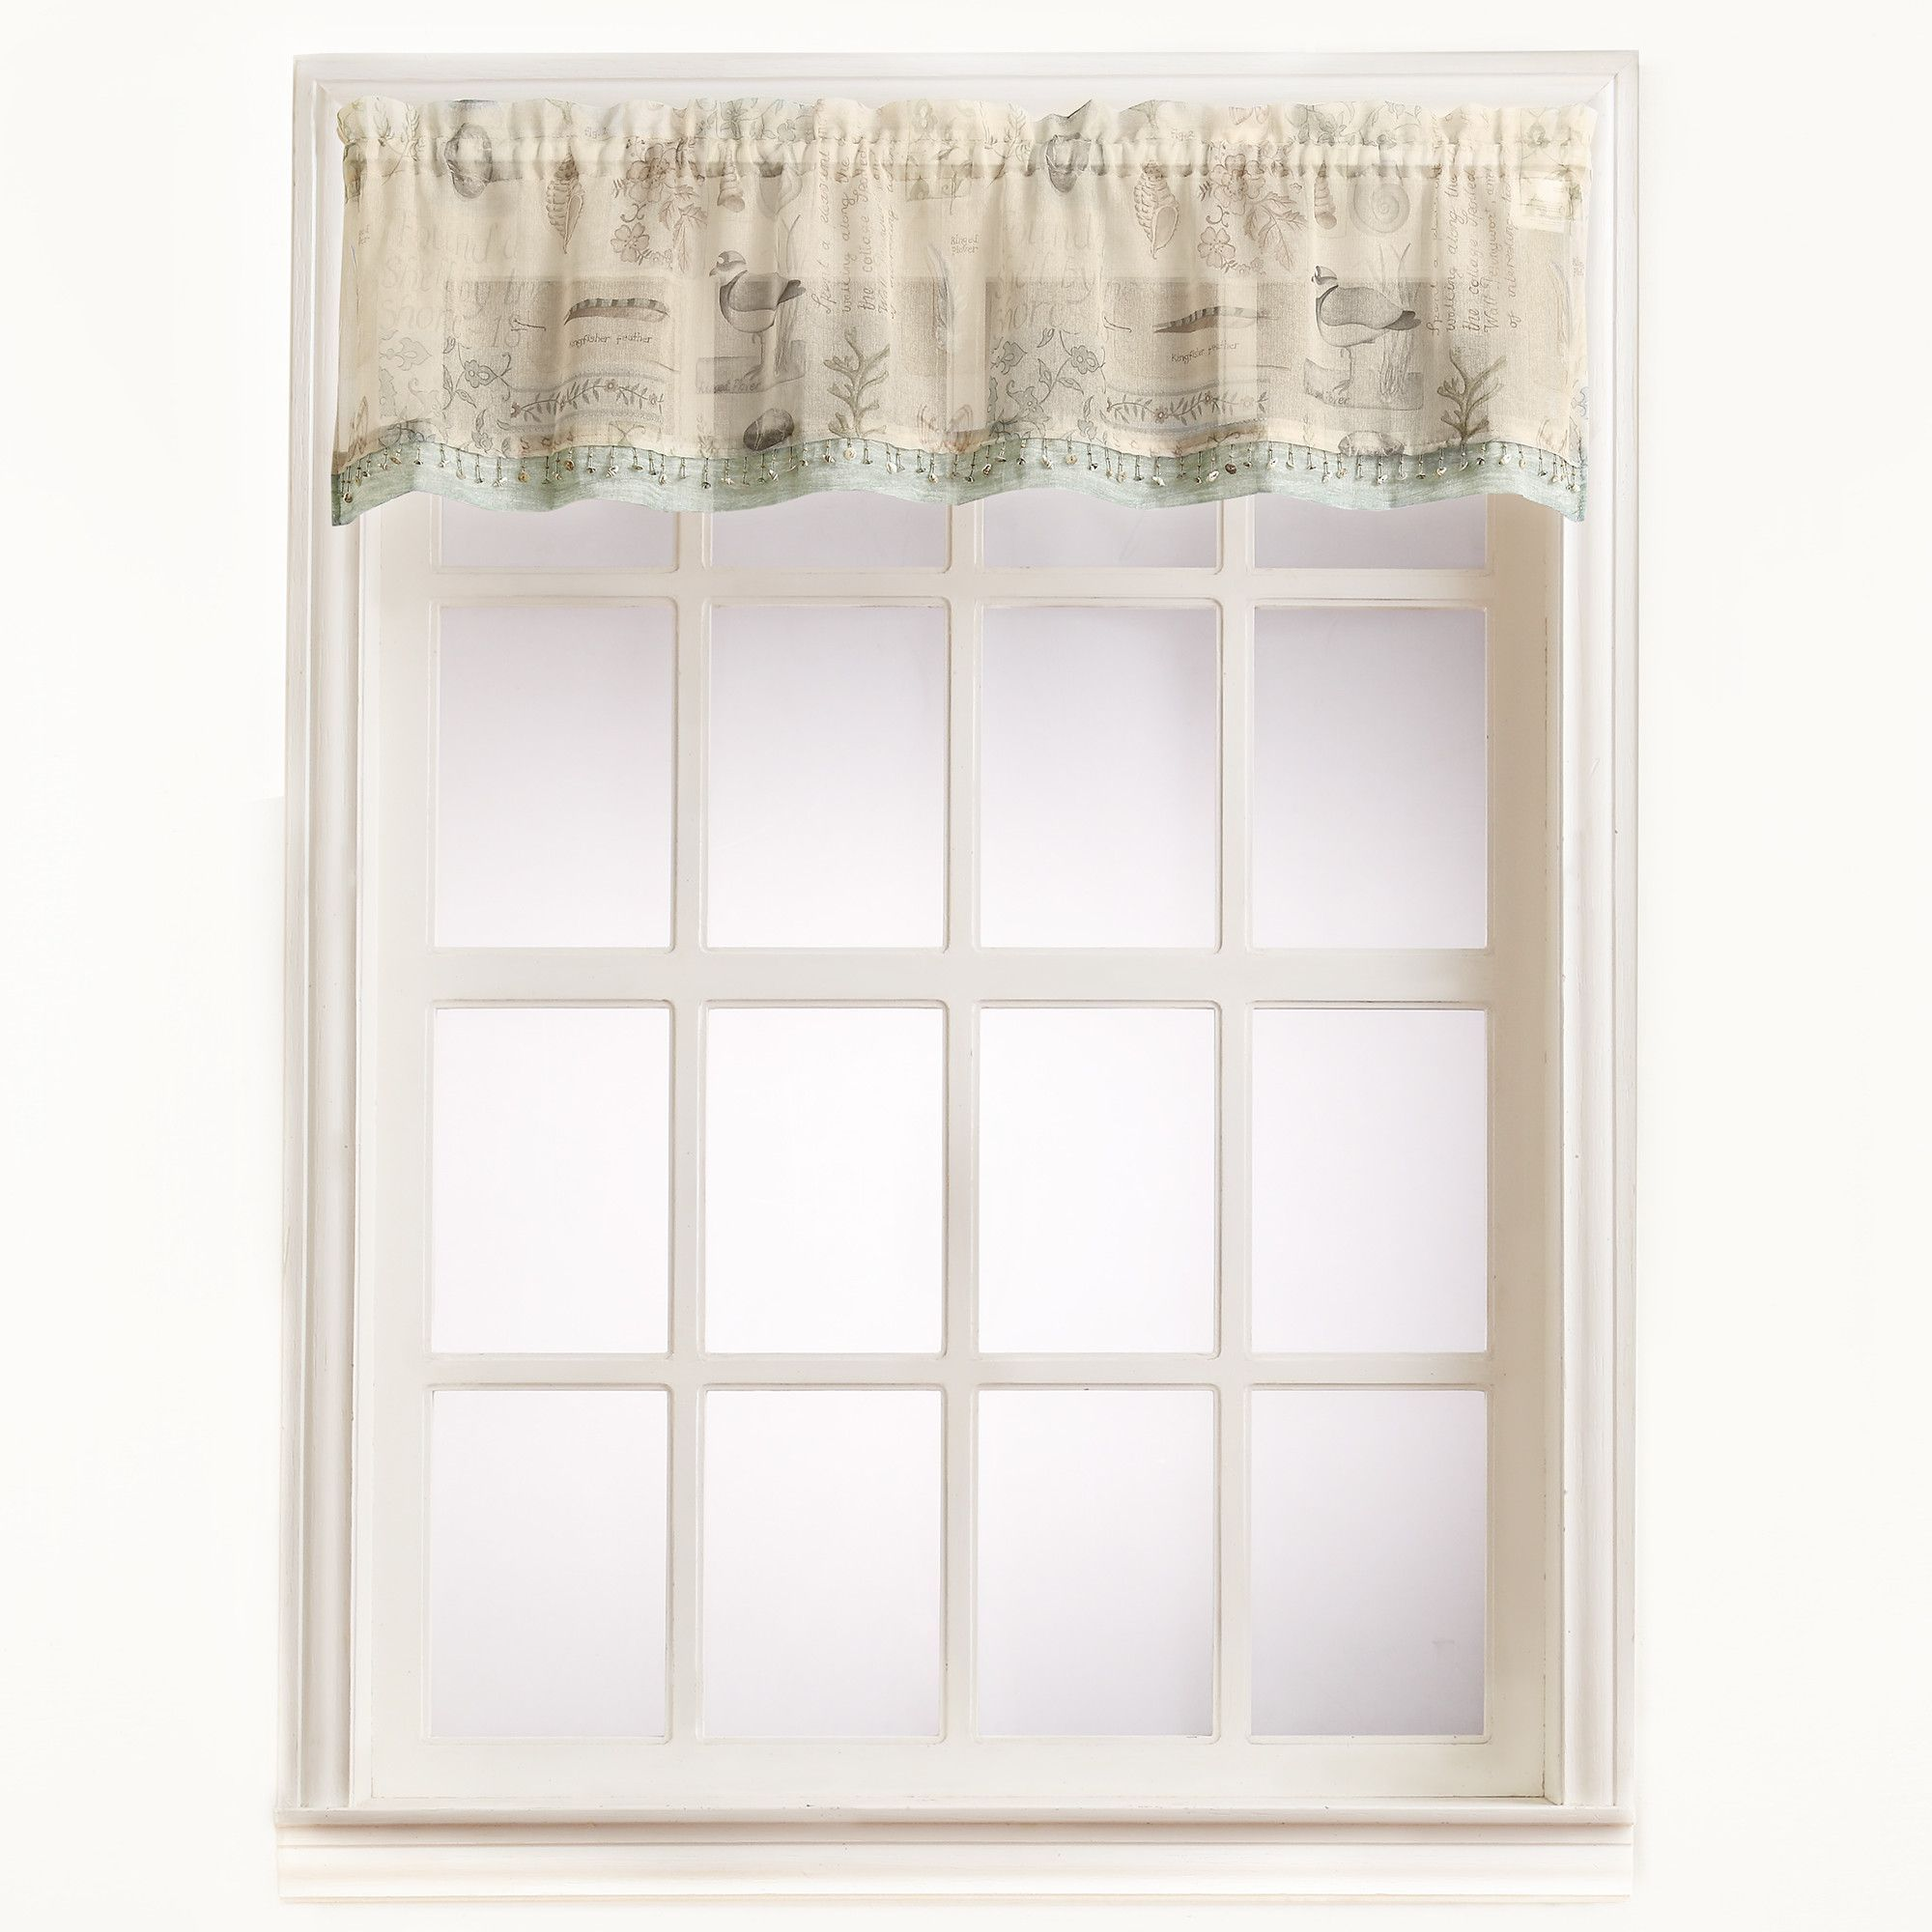 Curtain valances for windows and rods - Rod Pocket Curtains